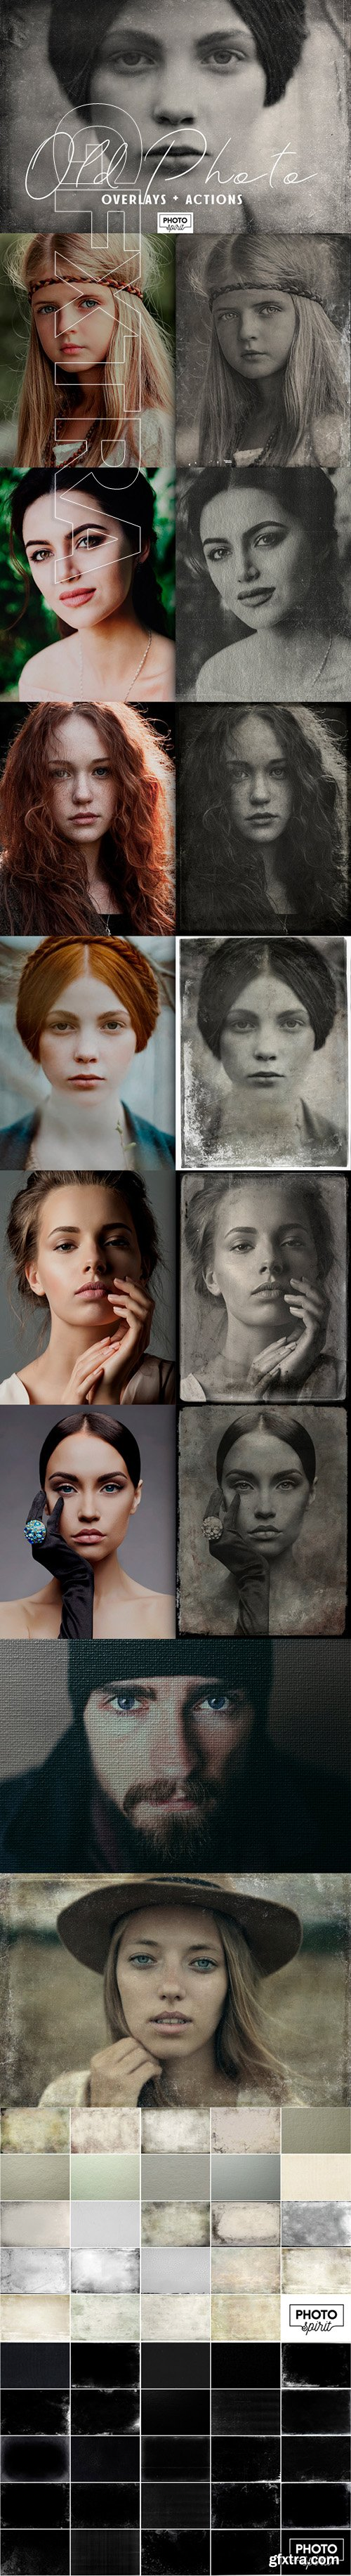 CreativeMarket - Old Photo Effect Overlays Actions 2709006